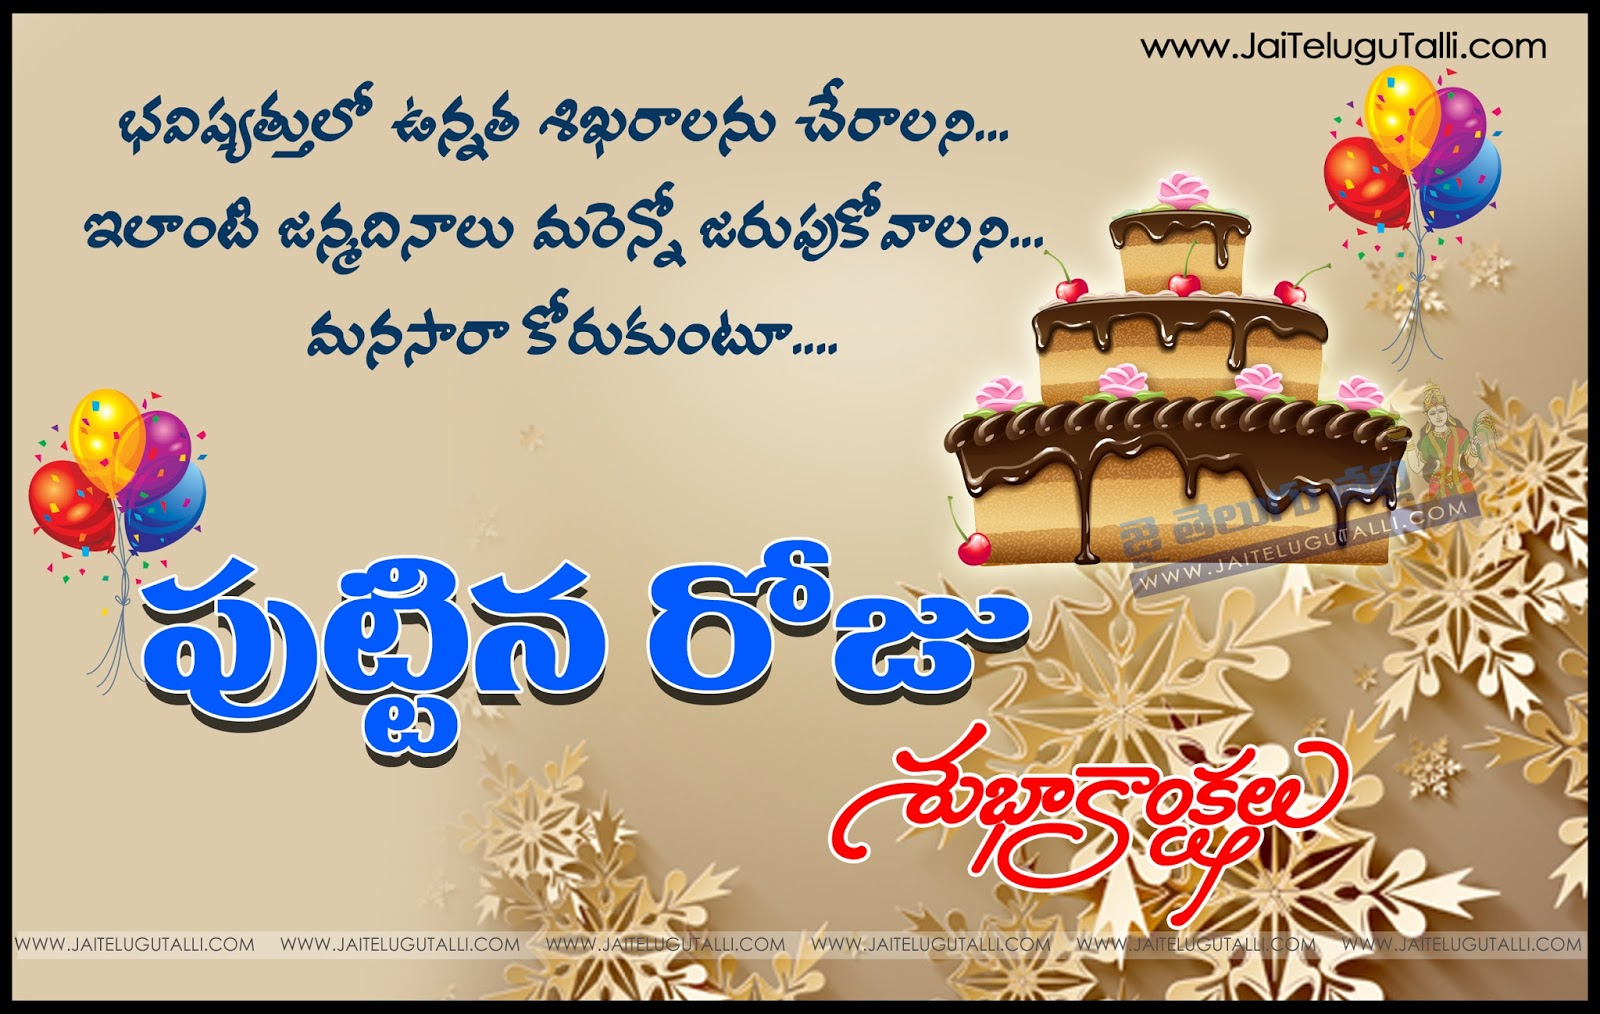 Telugu birthday wishes greetings quotes images